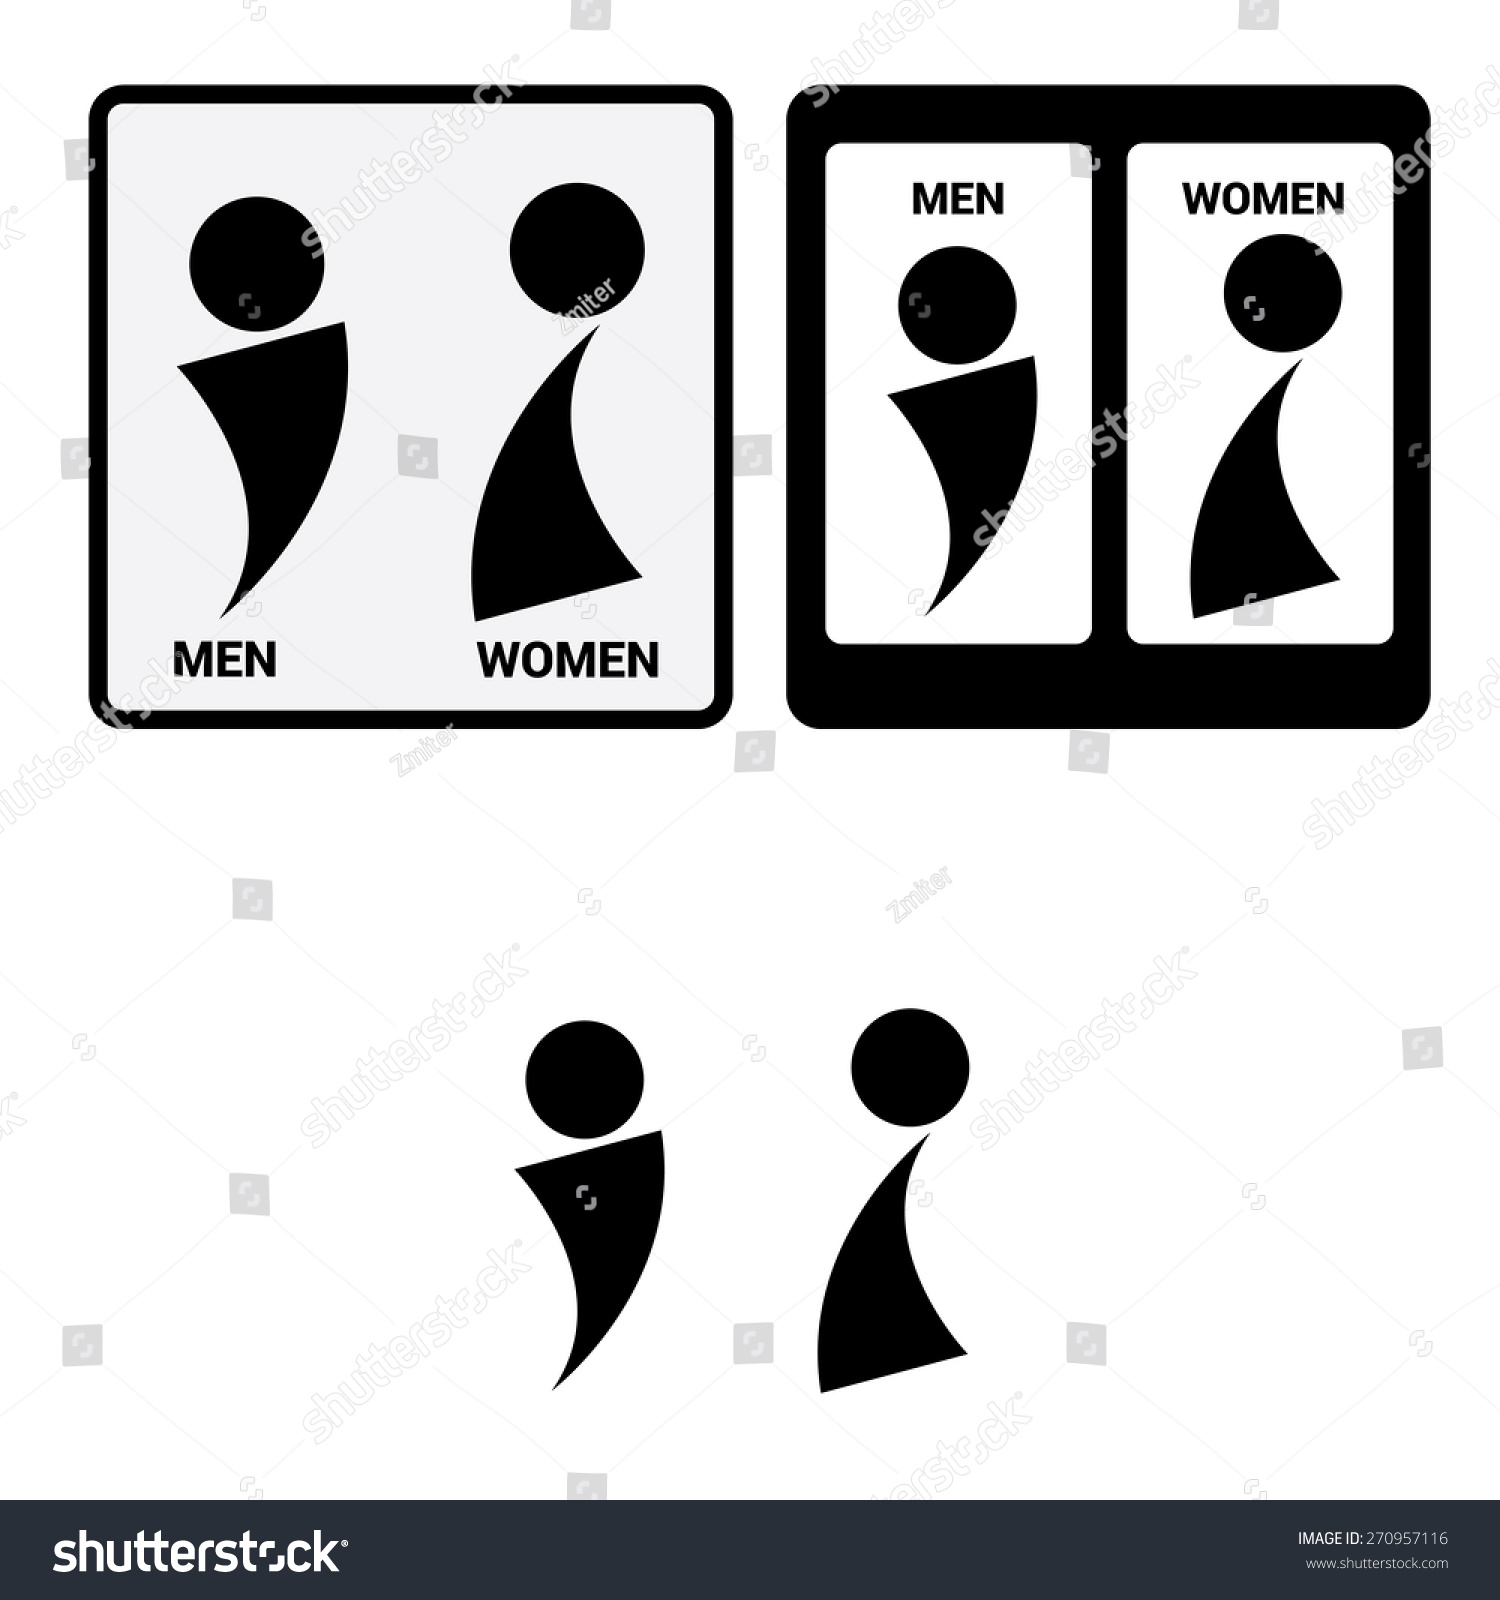 New 80 Bathroom Sign Woman Decorating Inspiration Of